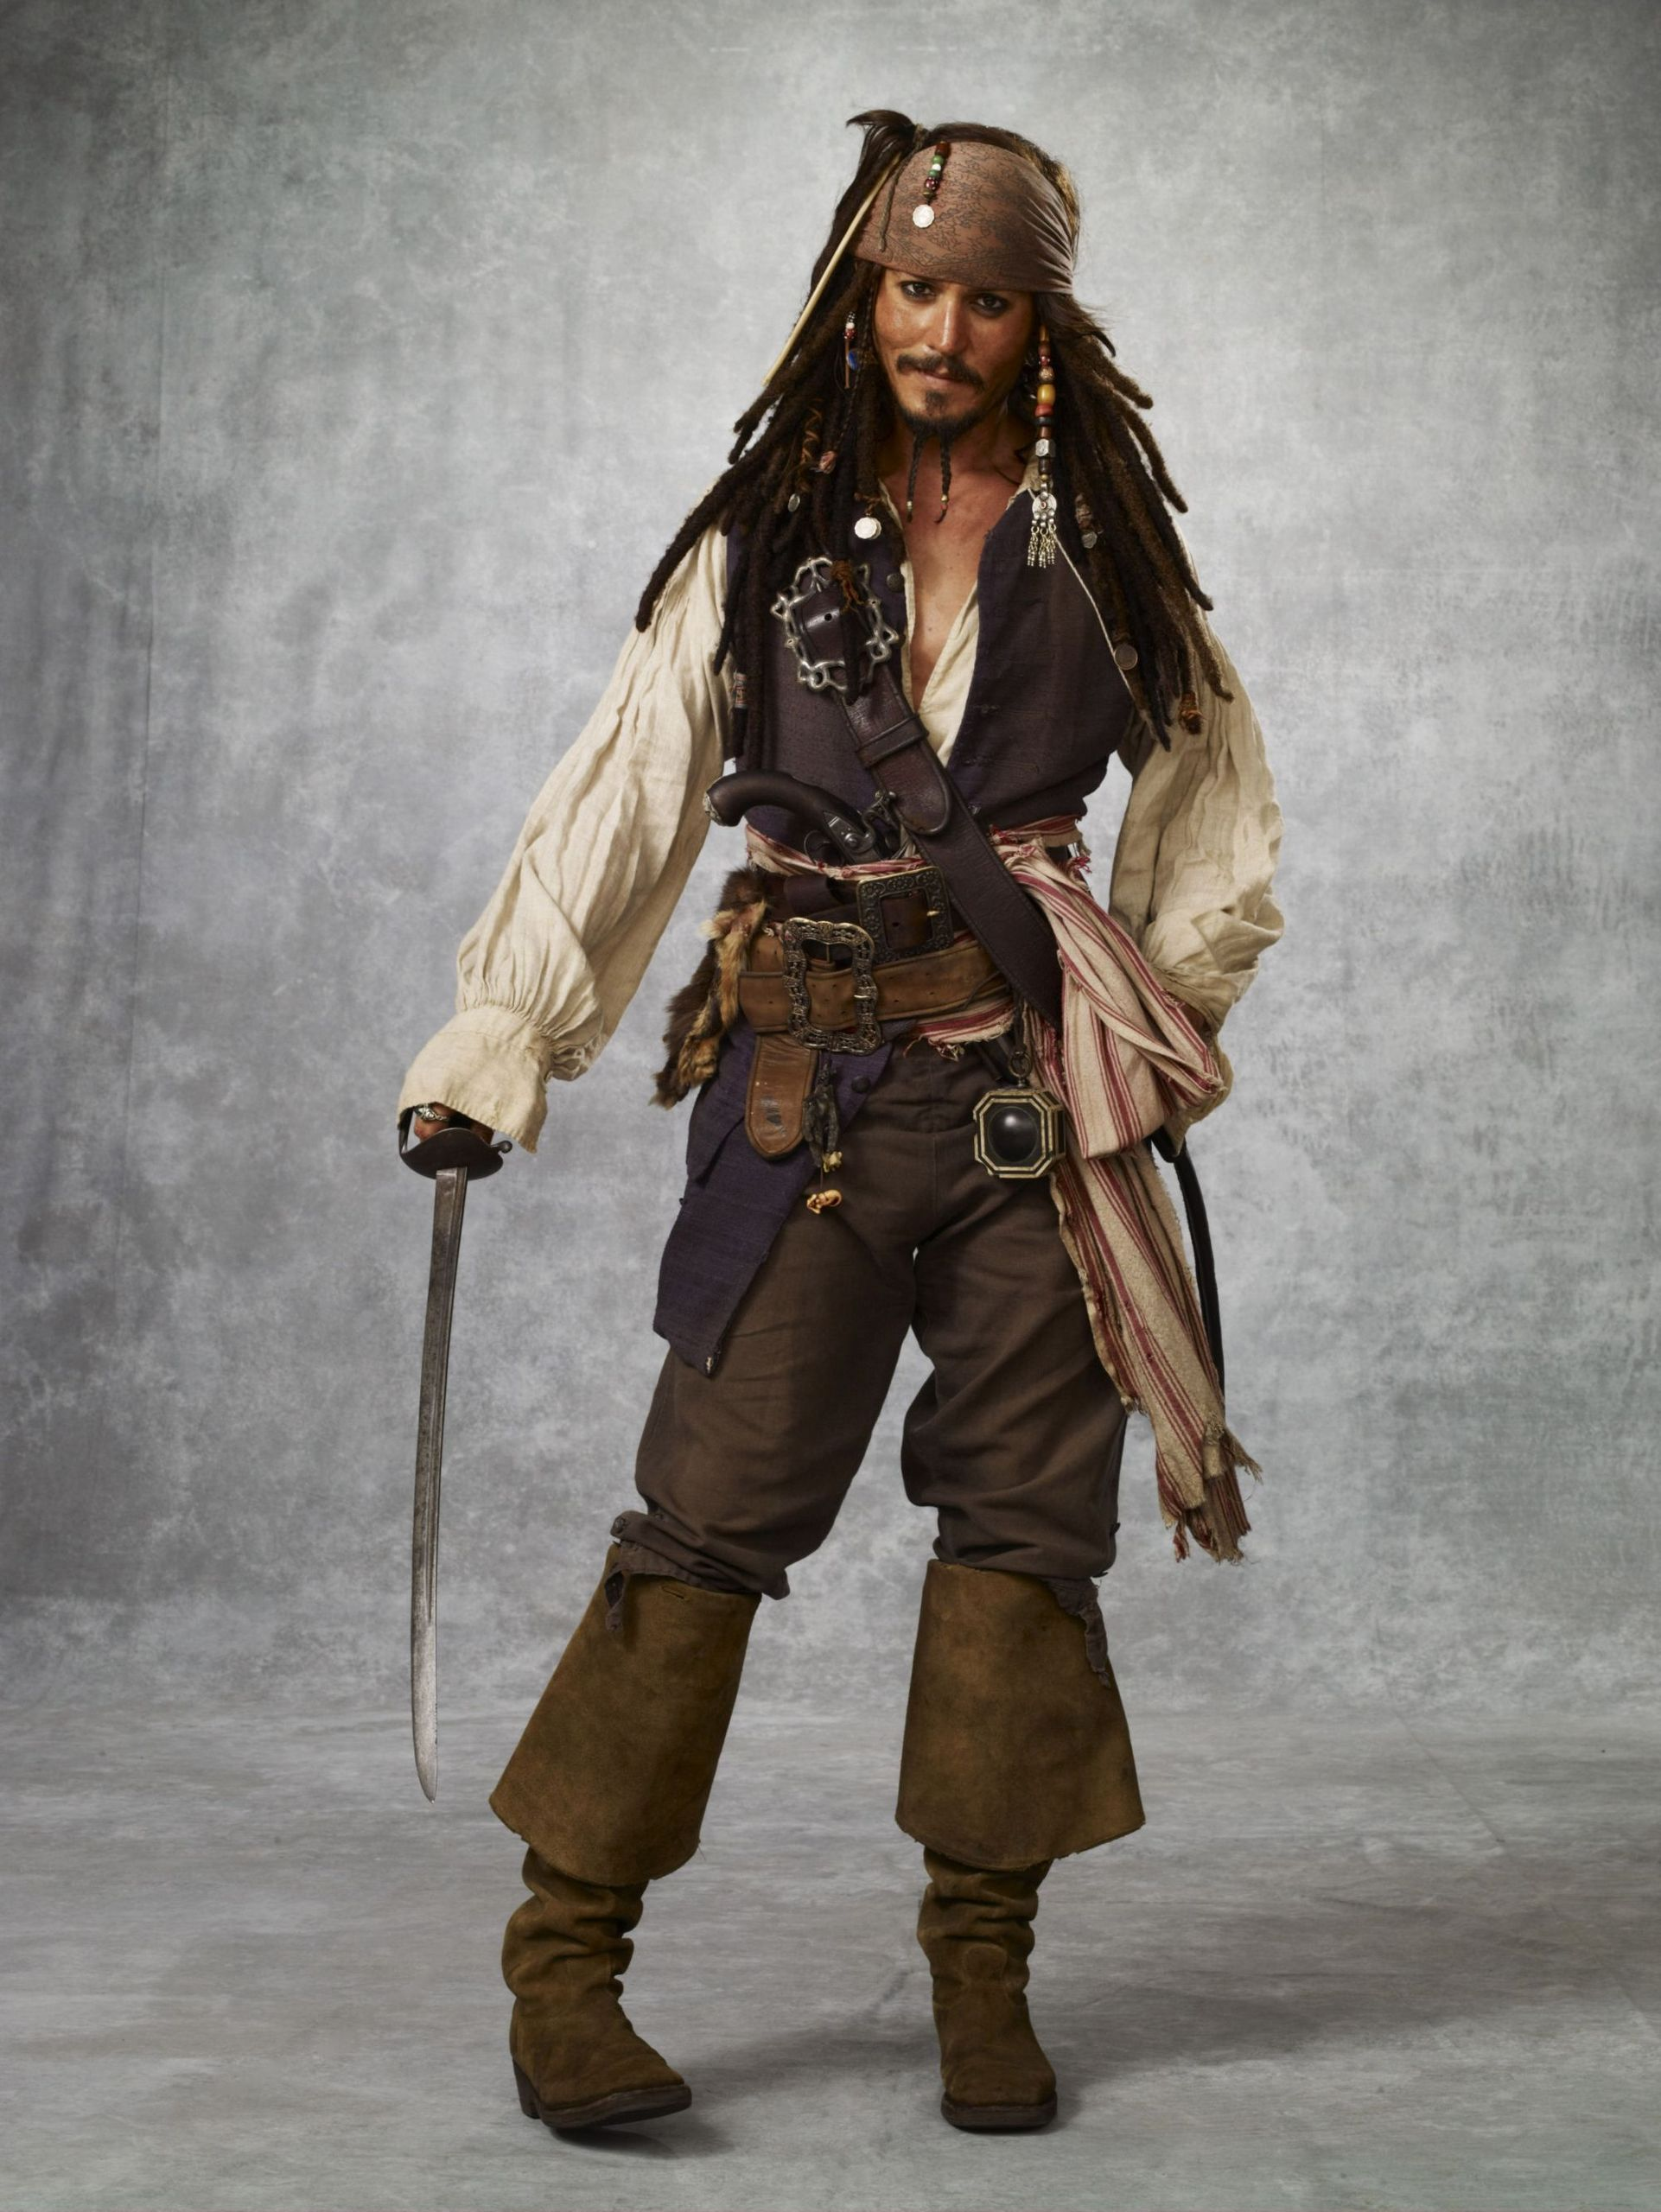 Captain Jack Captain Jack Sparrow Photo 27595497 Fanpop